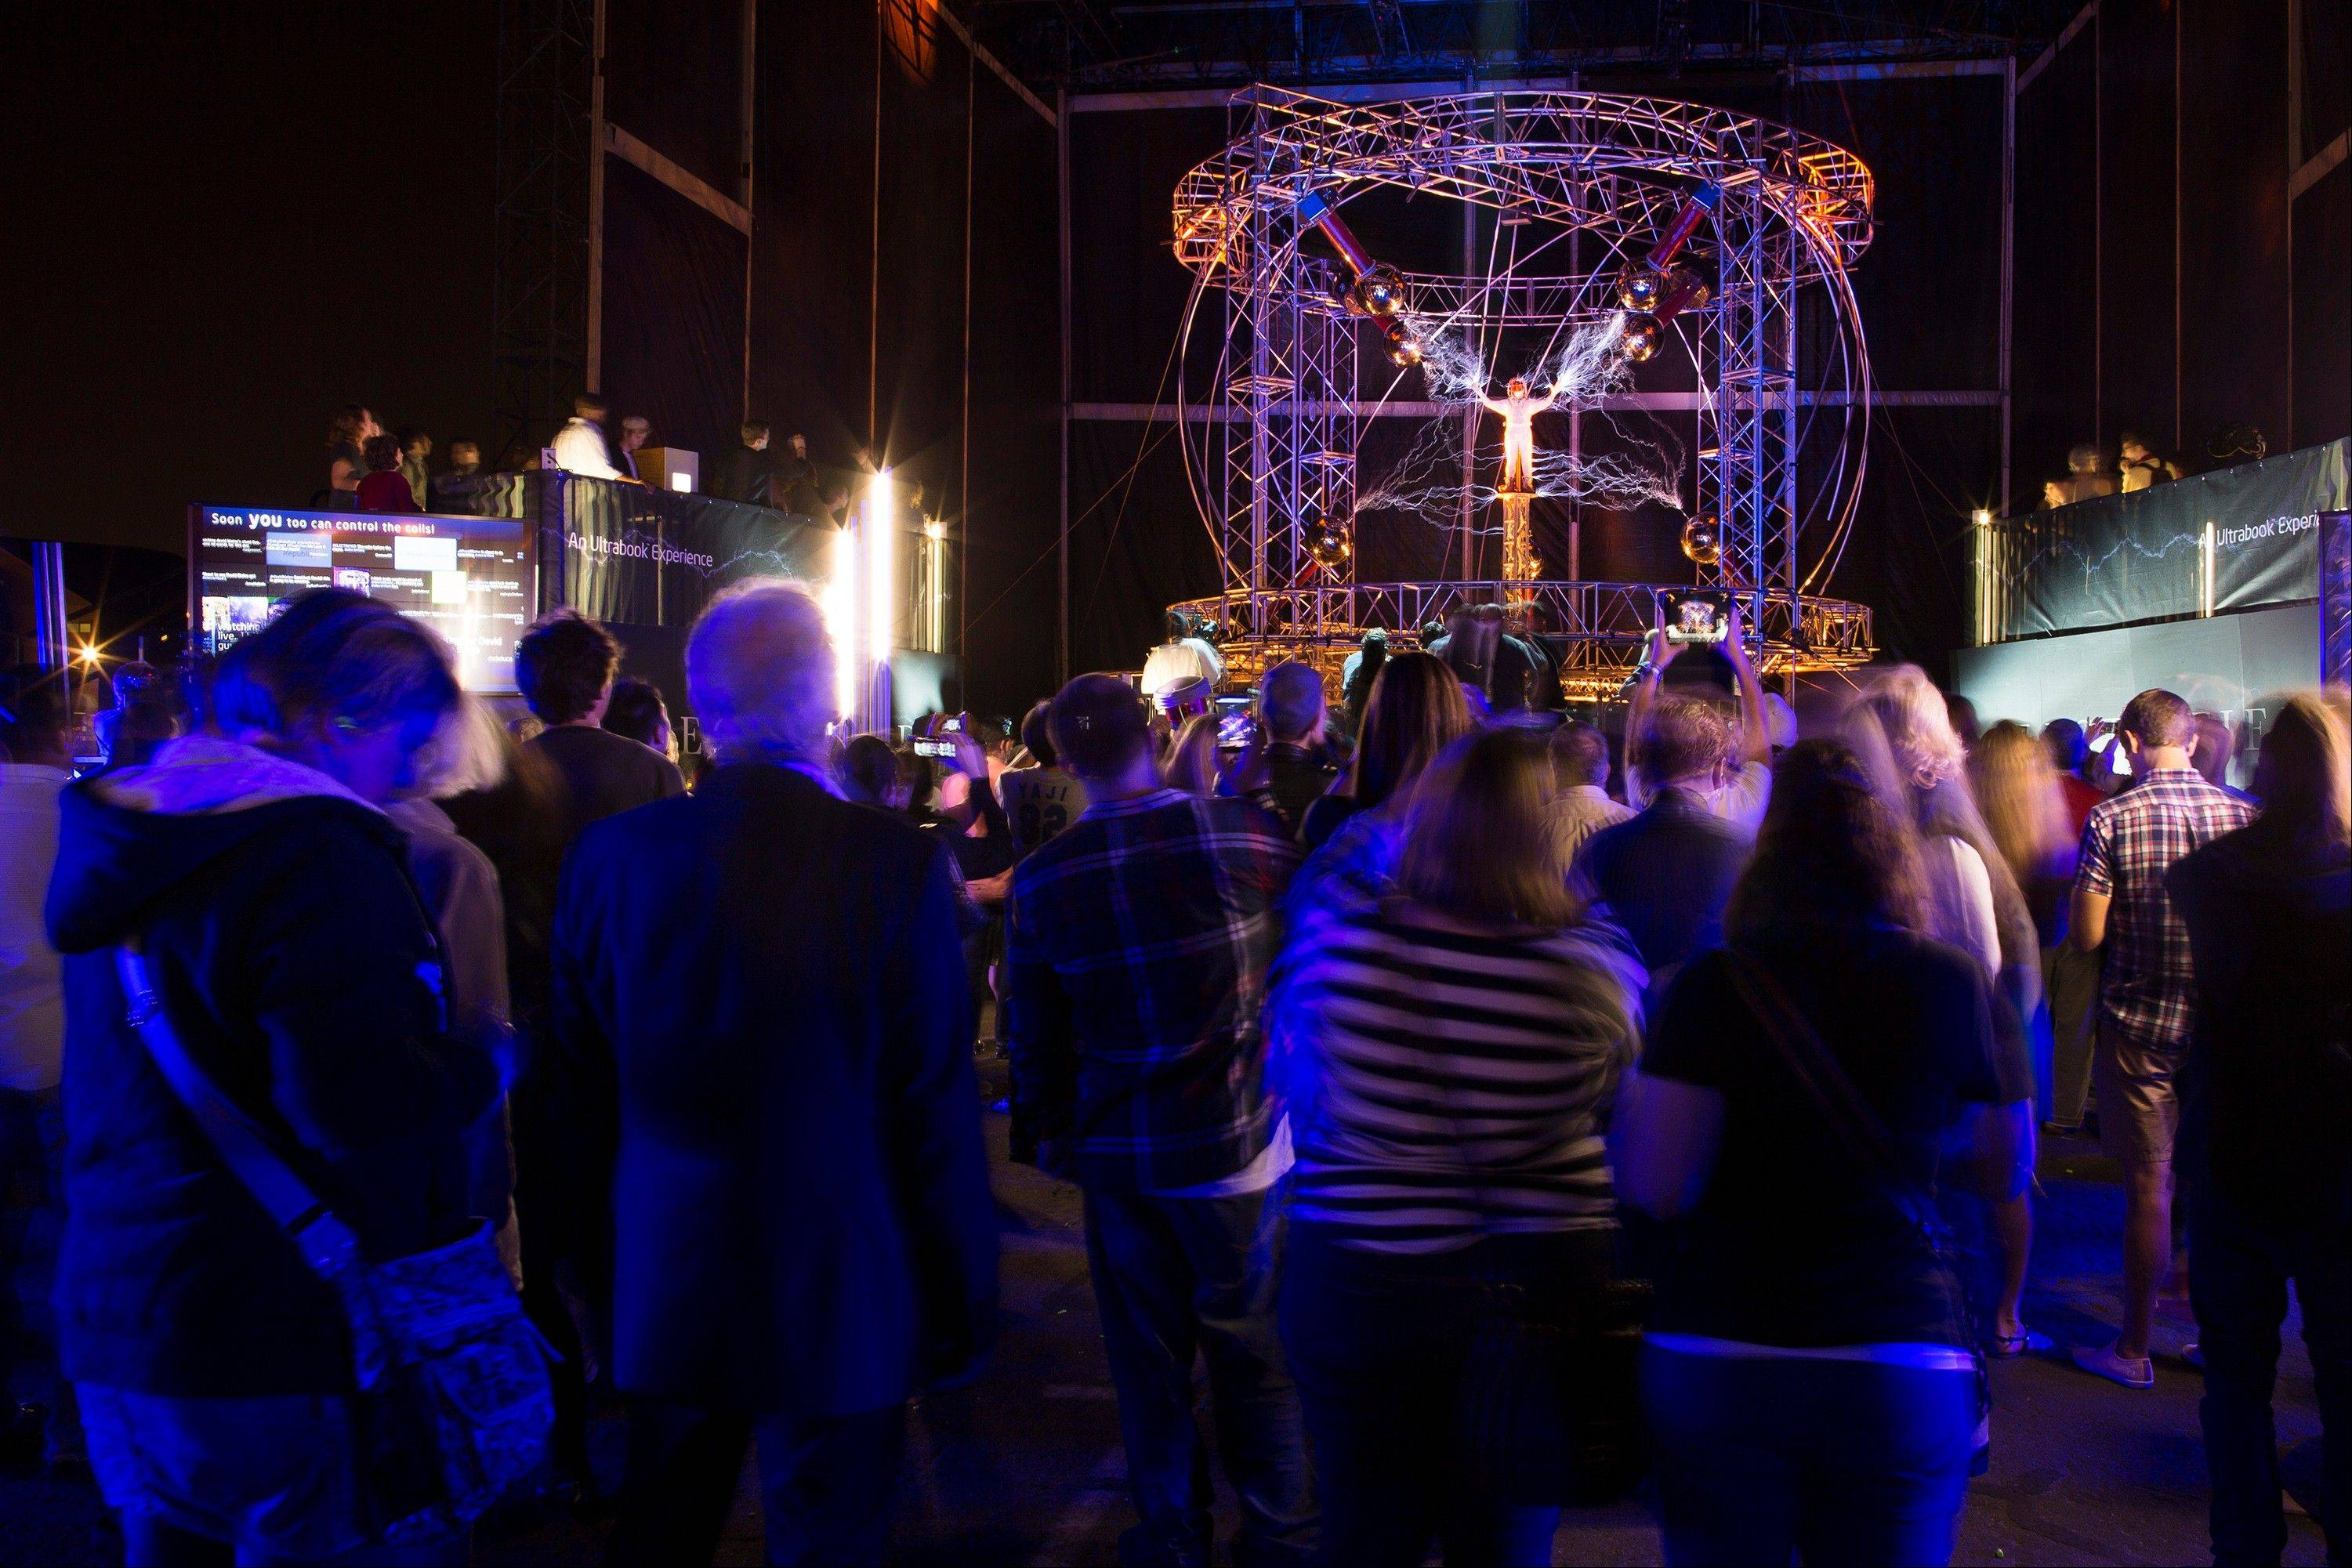 Magician David Blaine stands inside an apparatus surrounded by a million volts of electric currents streamed by tesla coils during his 72-hour �Electrified: 1 Million Volts Always On� stunt on Pier 54.